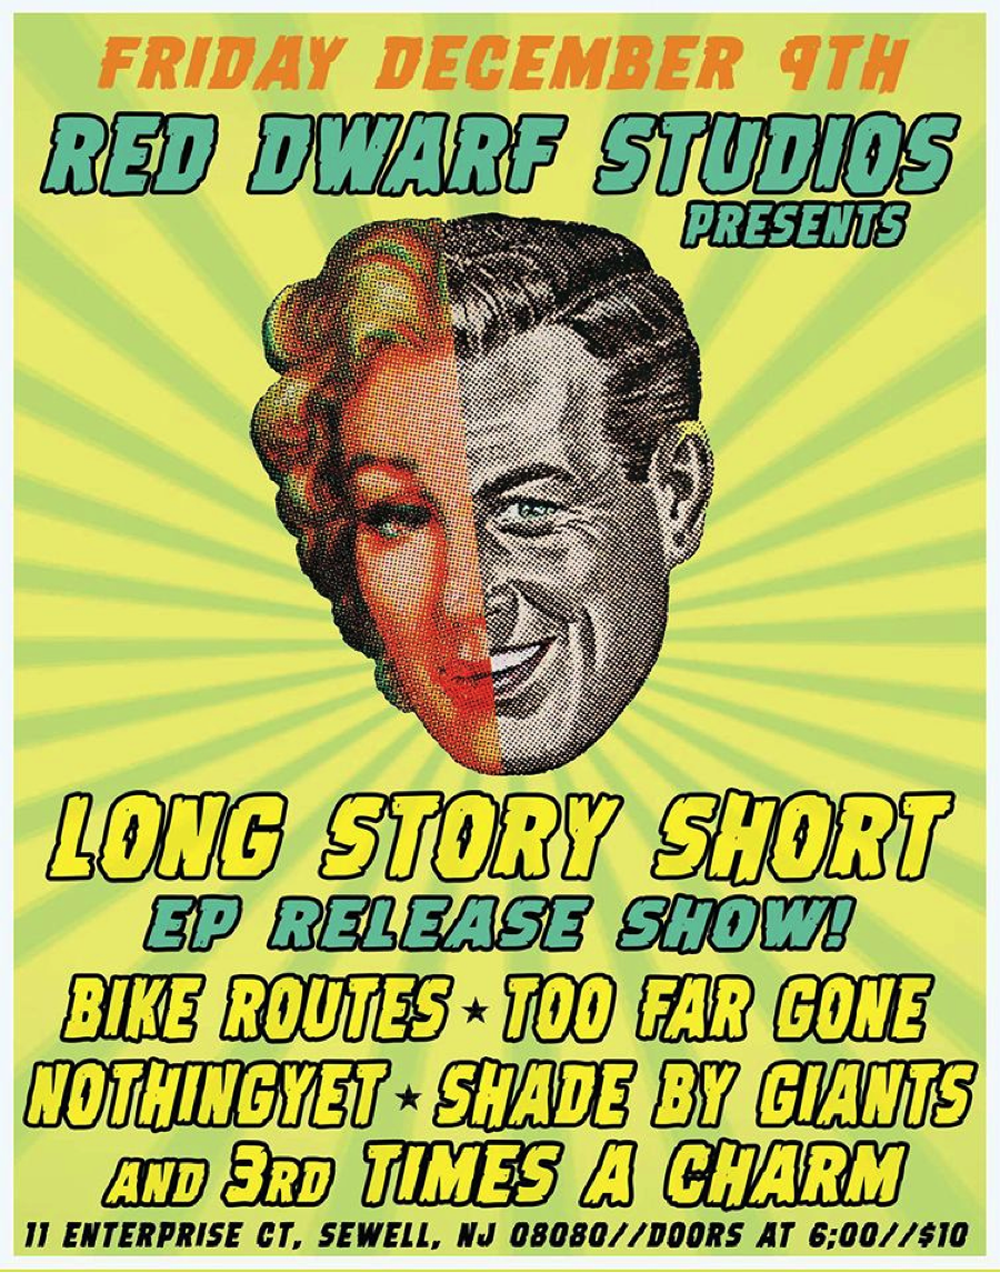 Long Story Short EP Release Show flyer.png